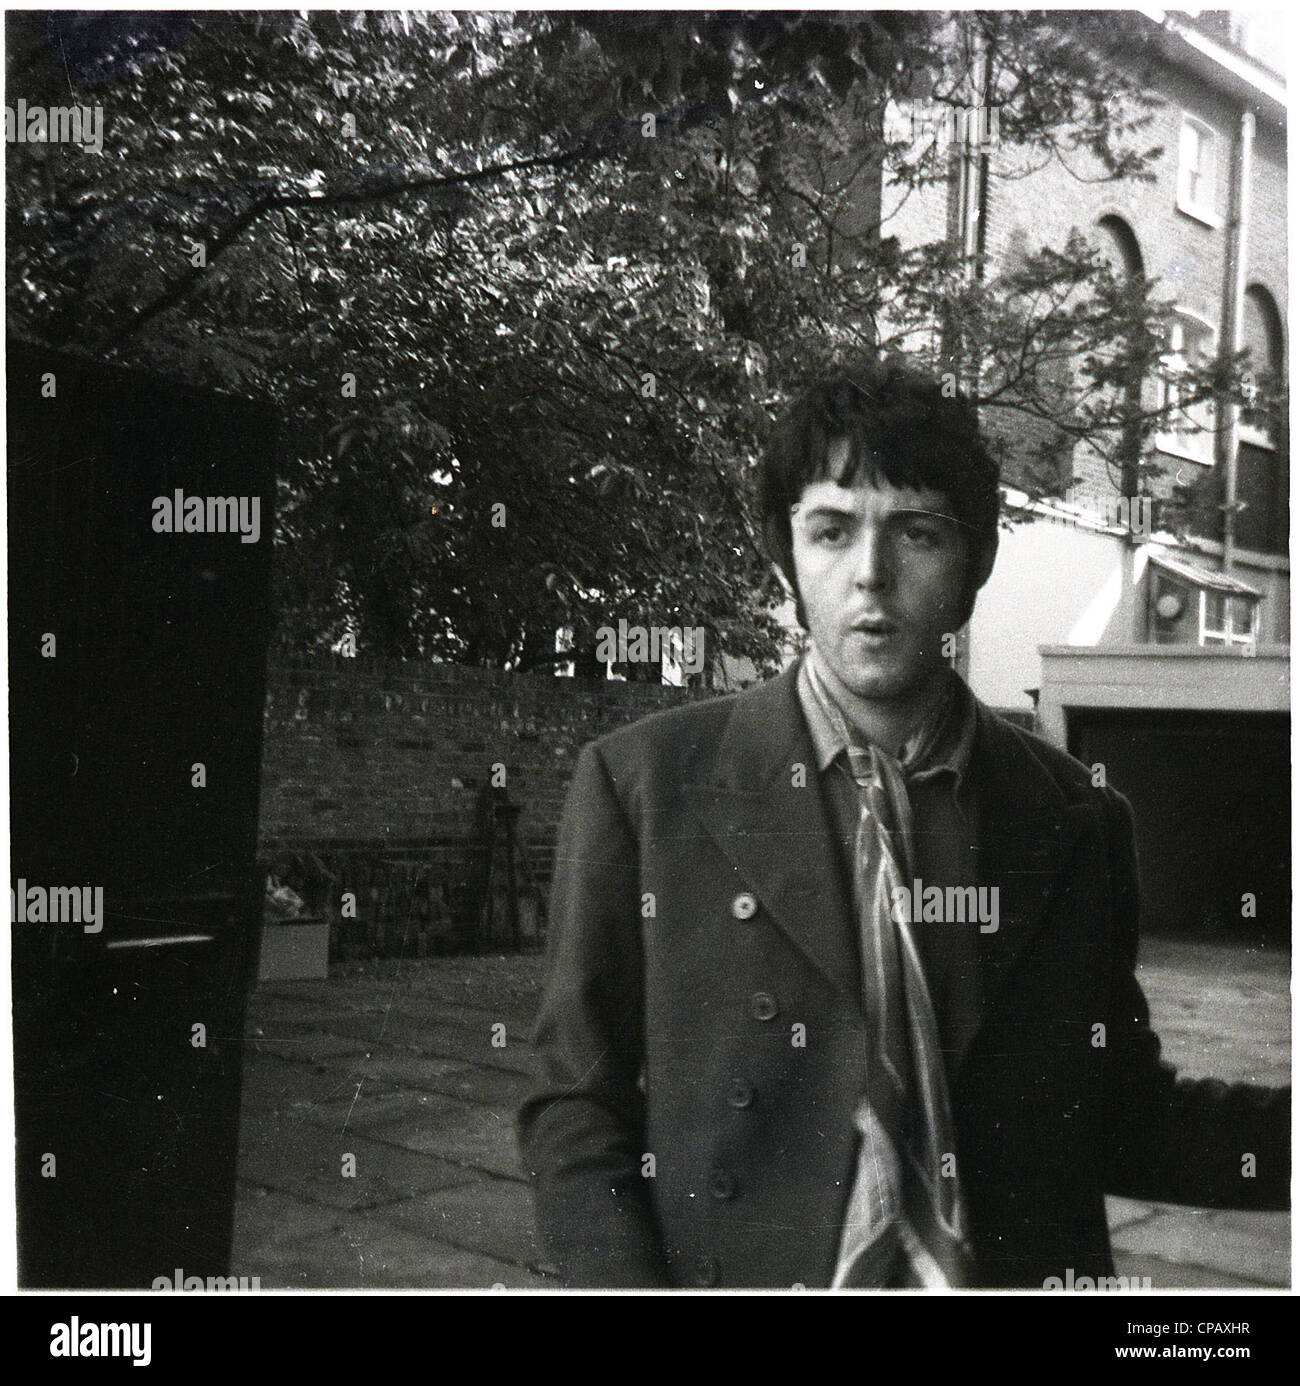 007760 - Paul McCartney outside his home on Cavendish Avenue, London in 1967 - Stock Image